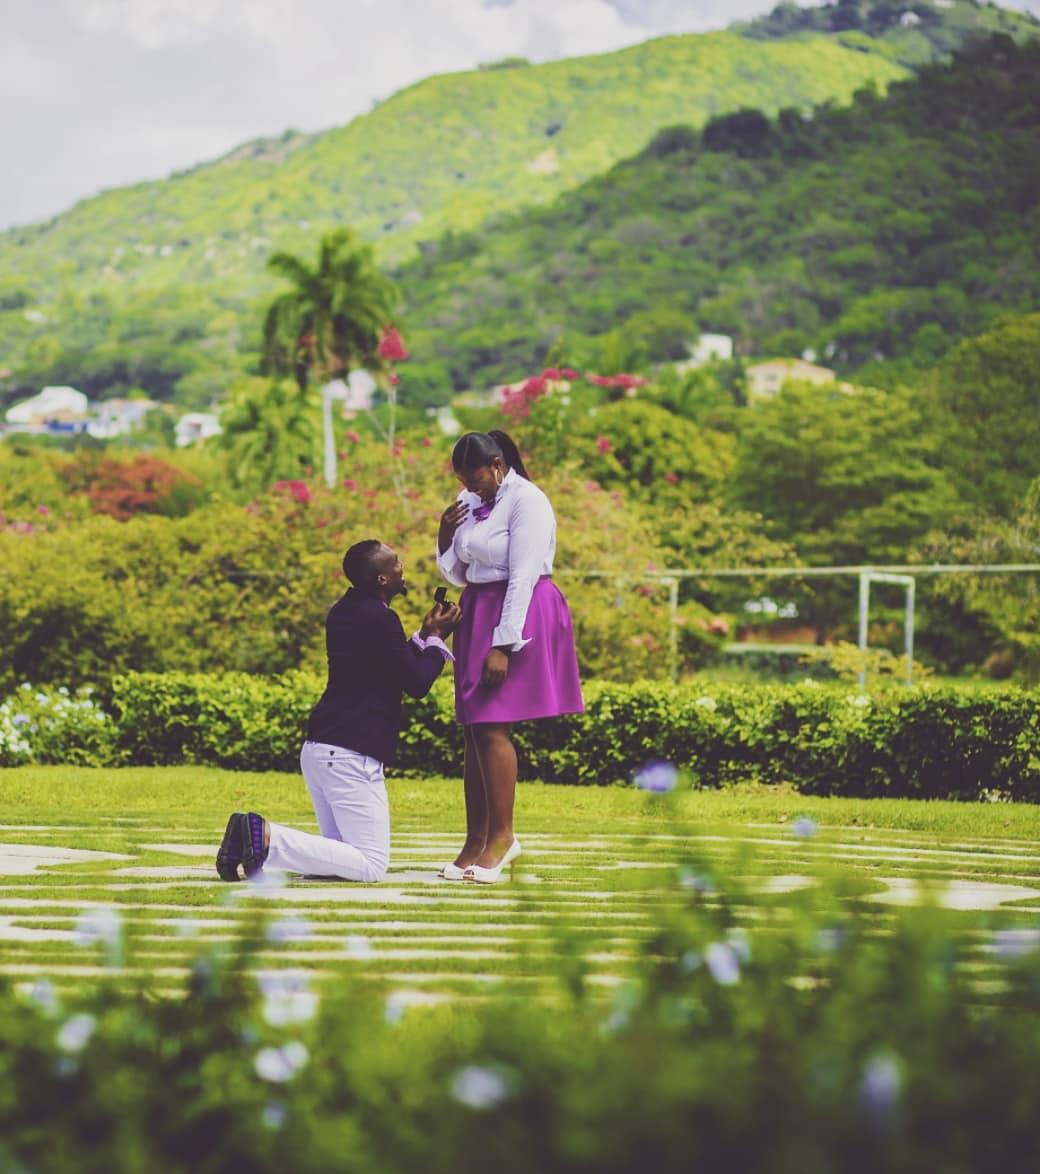 These Afro Caribbean Cute Wedding Proposals and Love Stories Left Us 'Aww-struck' in 2019